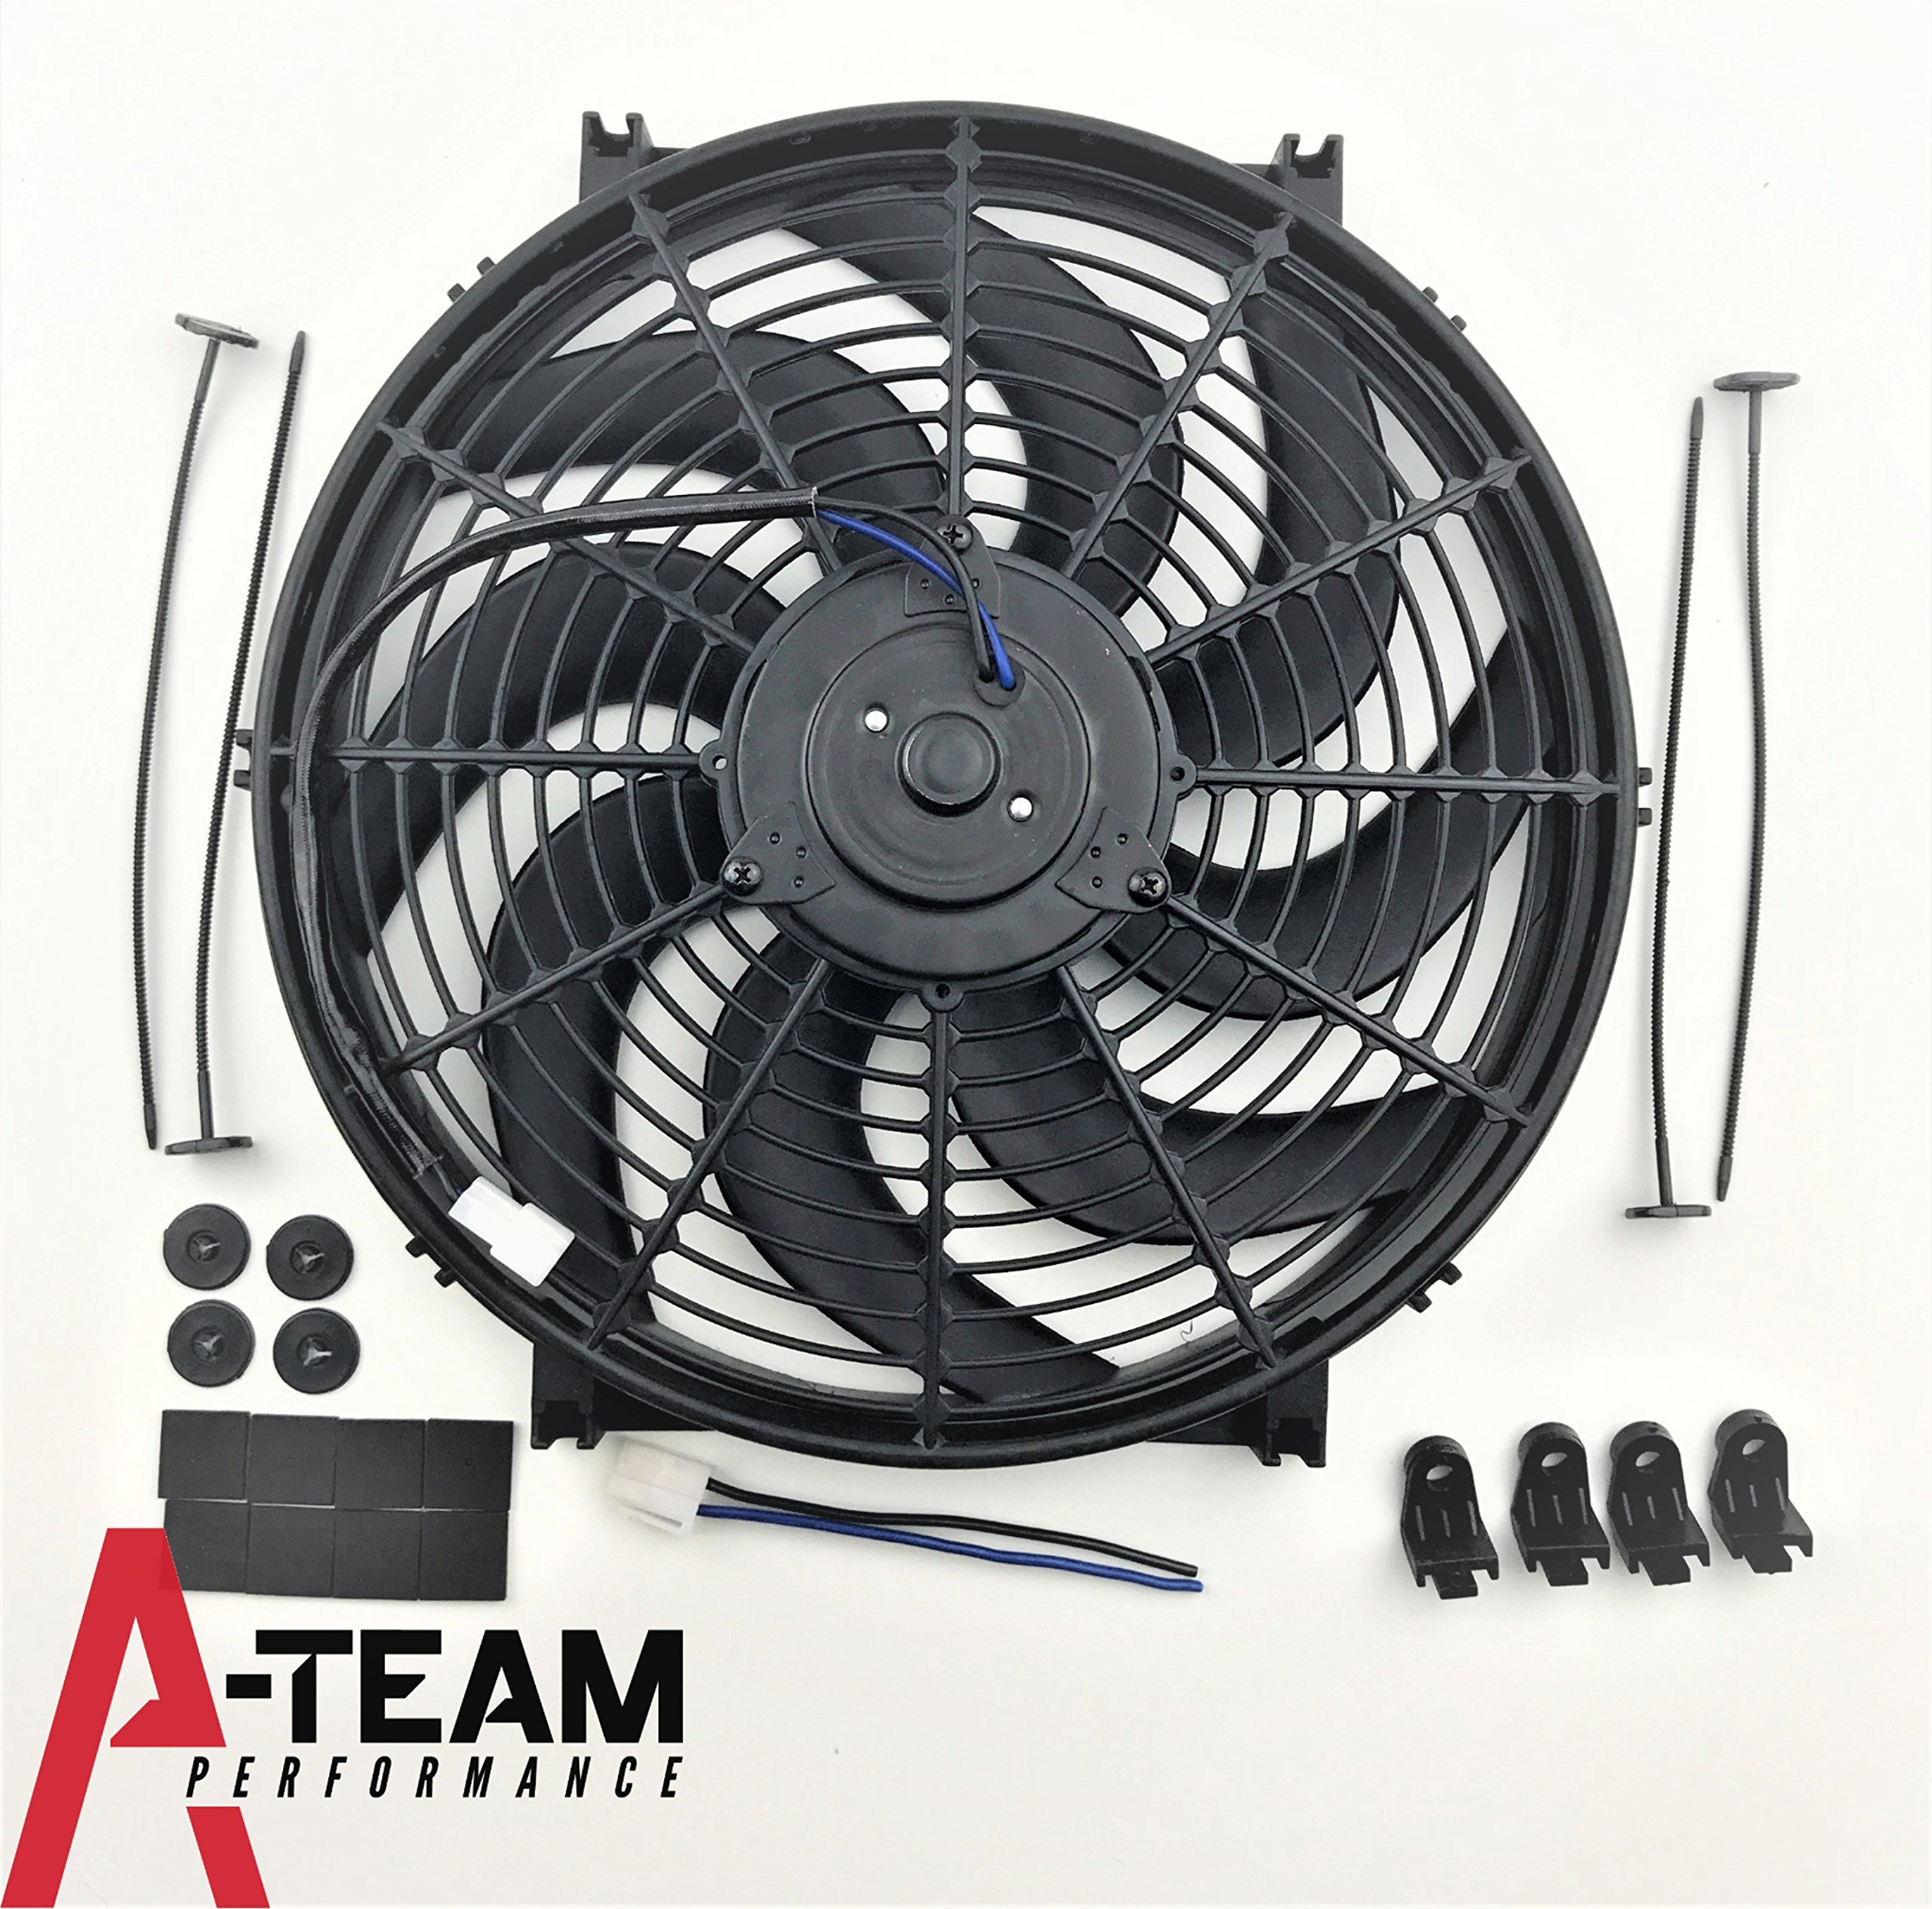 A-Team Performance 110011 14'' Heavy Duty 12V Radiator Electric Wide Curved 8 Blade FAN 2400 CFM Reversible Push or Pull with Mounting Kit by A-Team Performance